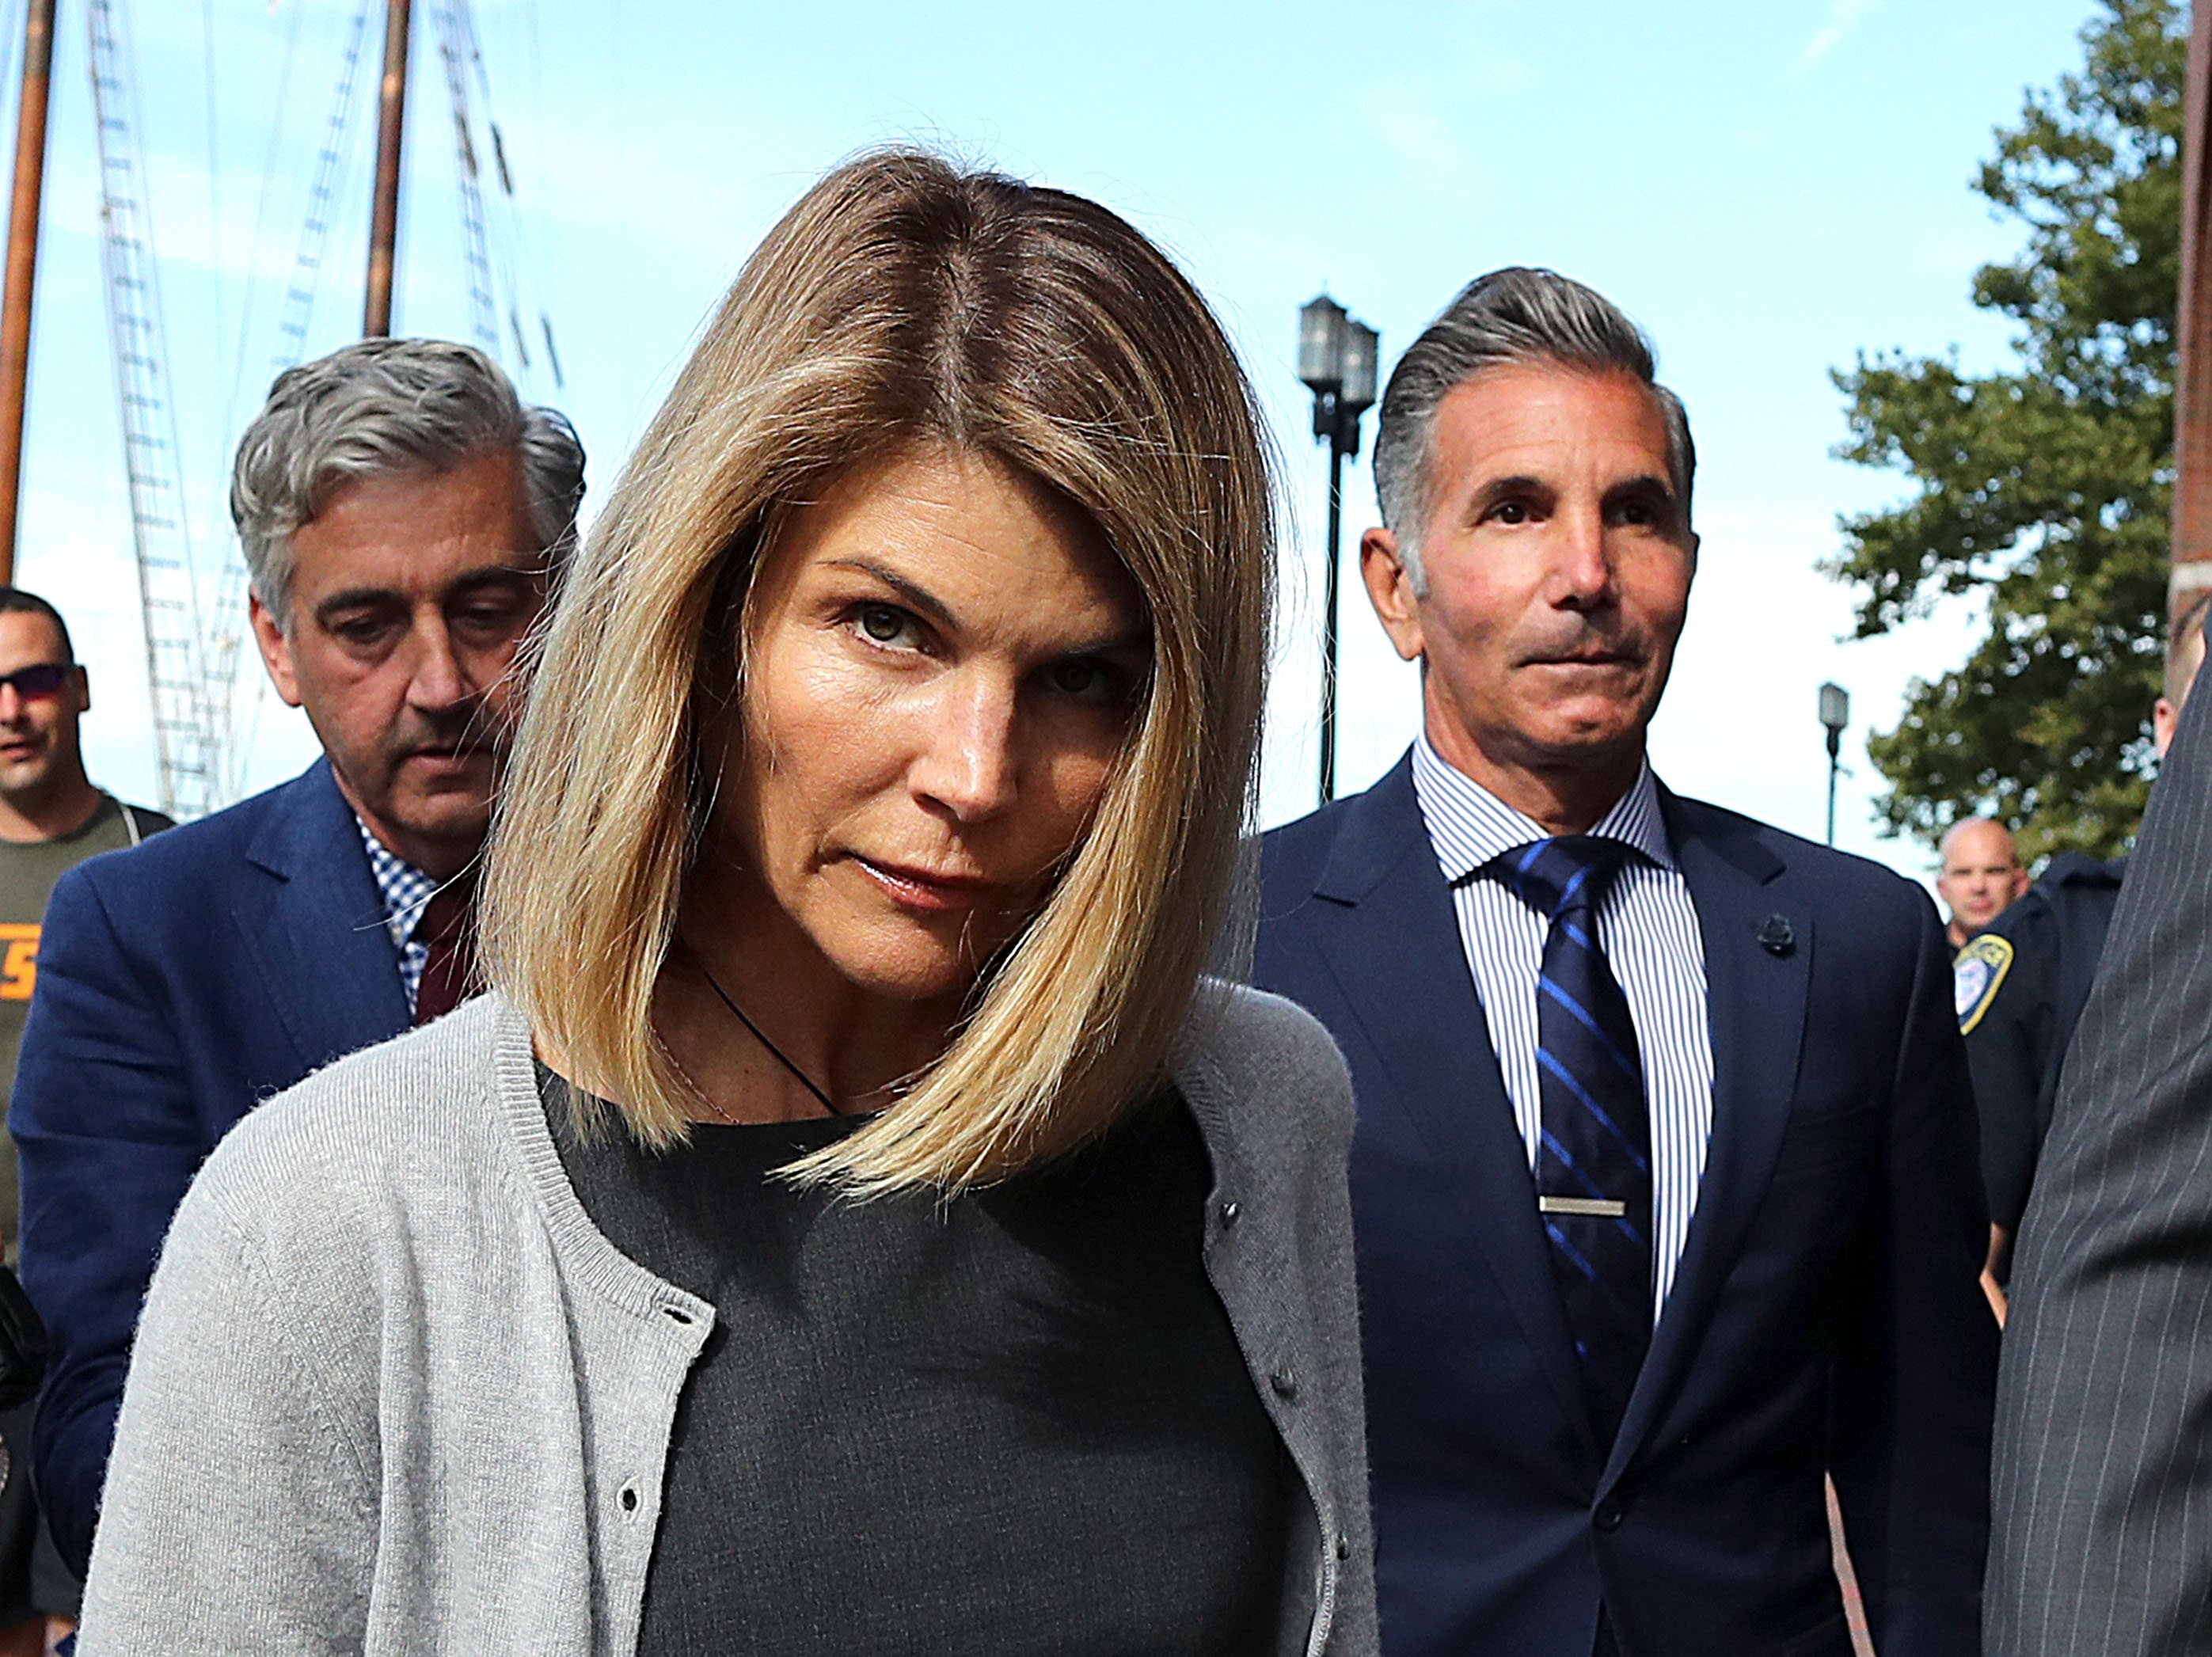 Lori Loughlin and her husband Mossimo Giannulli leave the John Joseph Moakley United States Courthouse in Boston on August. 27, 2019. | Source: Getty Images.